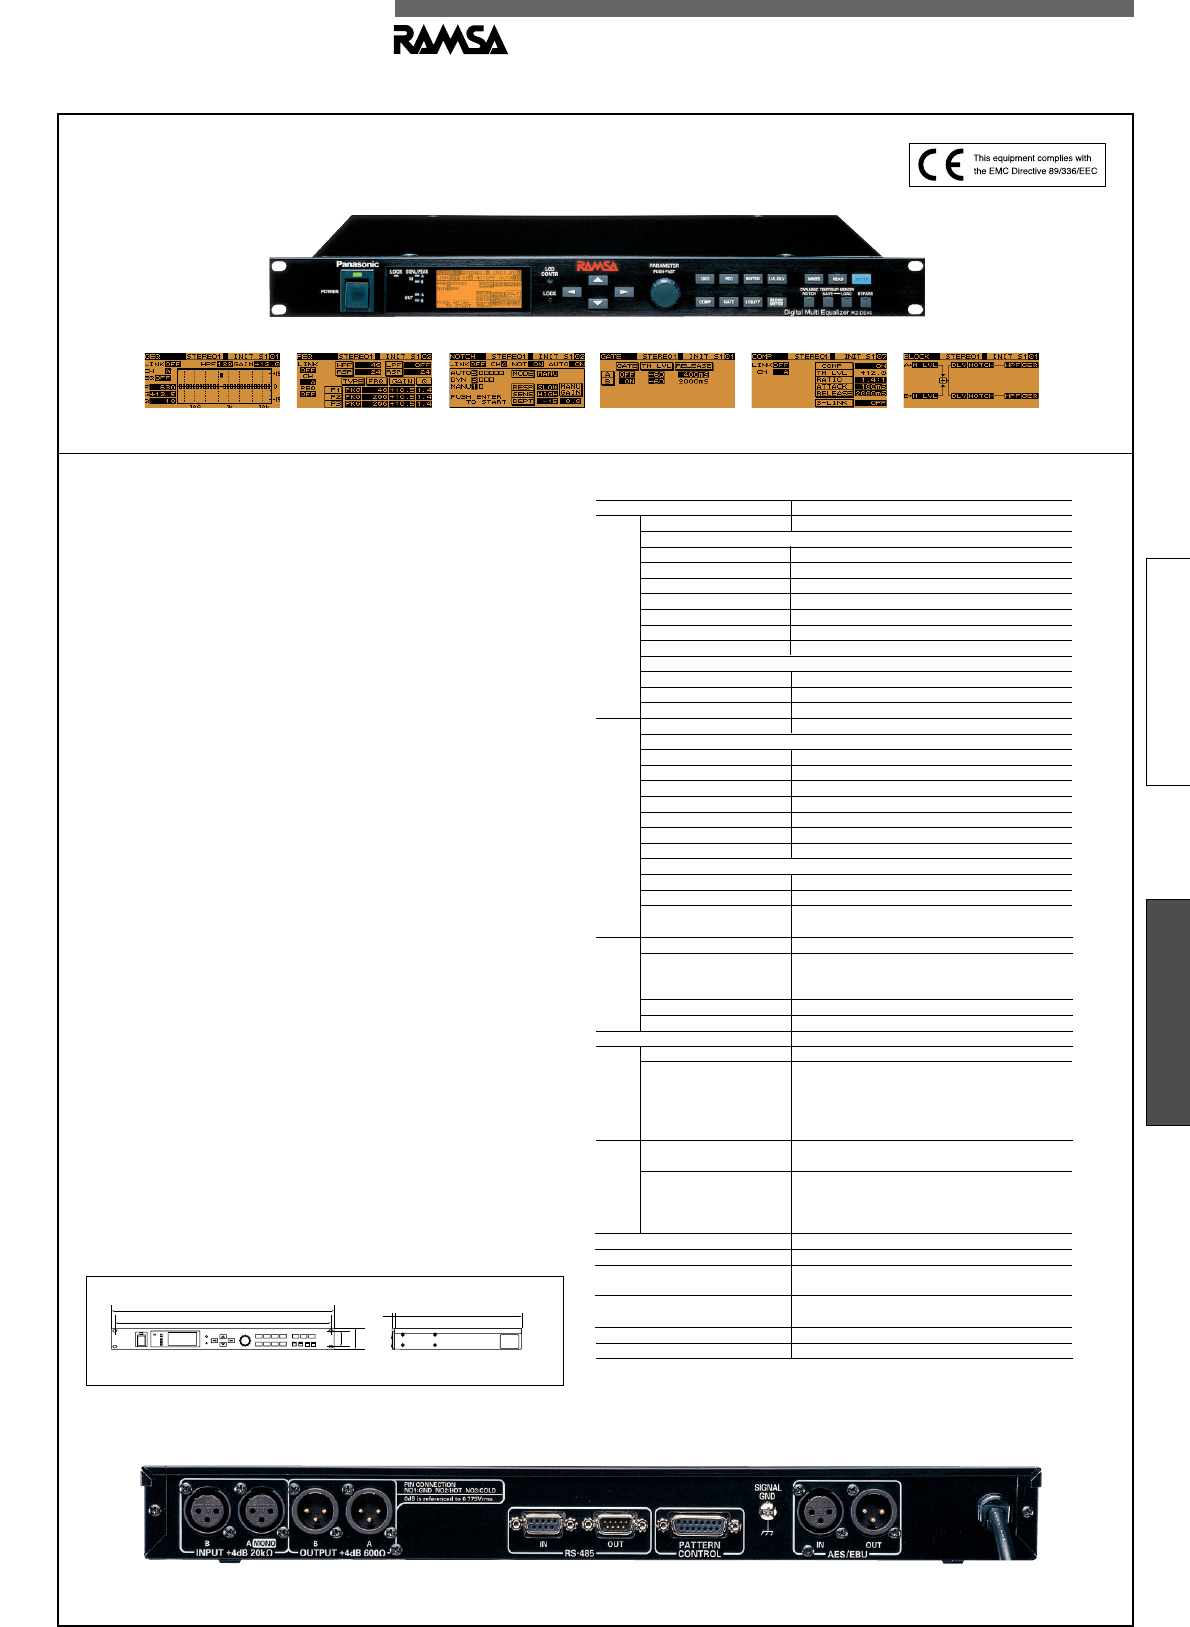 Panasonic Stereo Equalizer Wz De45nh User Guide Manualsonlinecom Dj Equipment Setup Diagram An The Digital Signal Processors